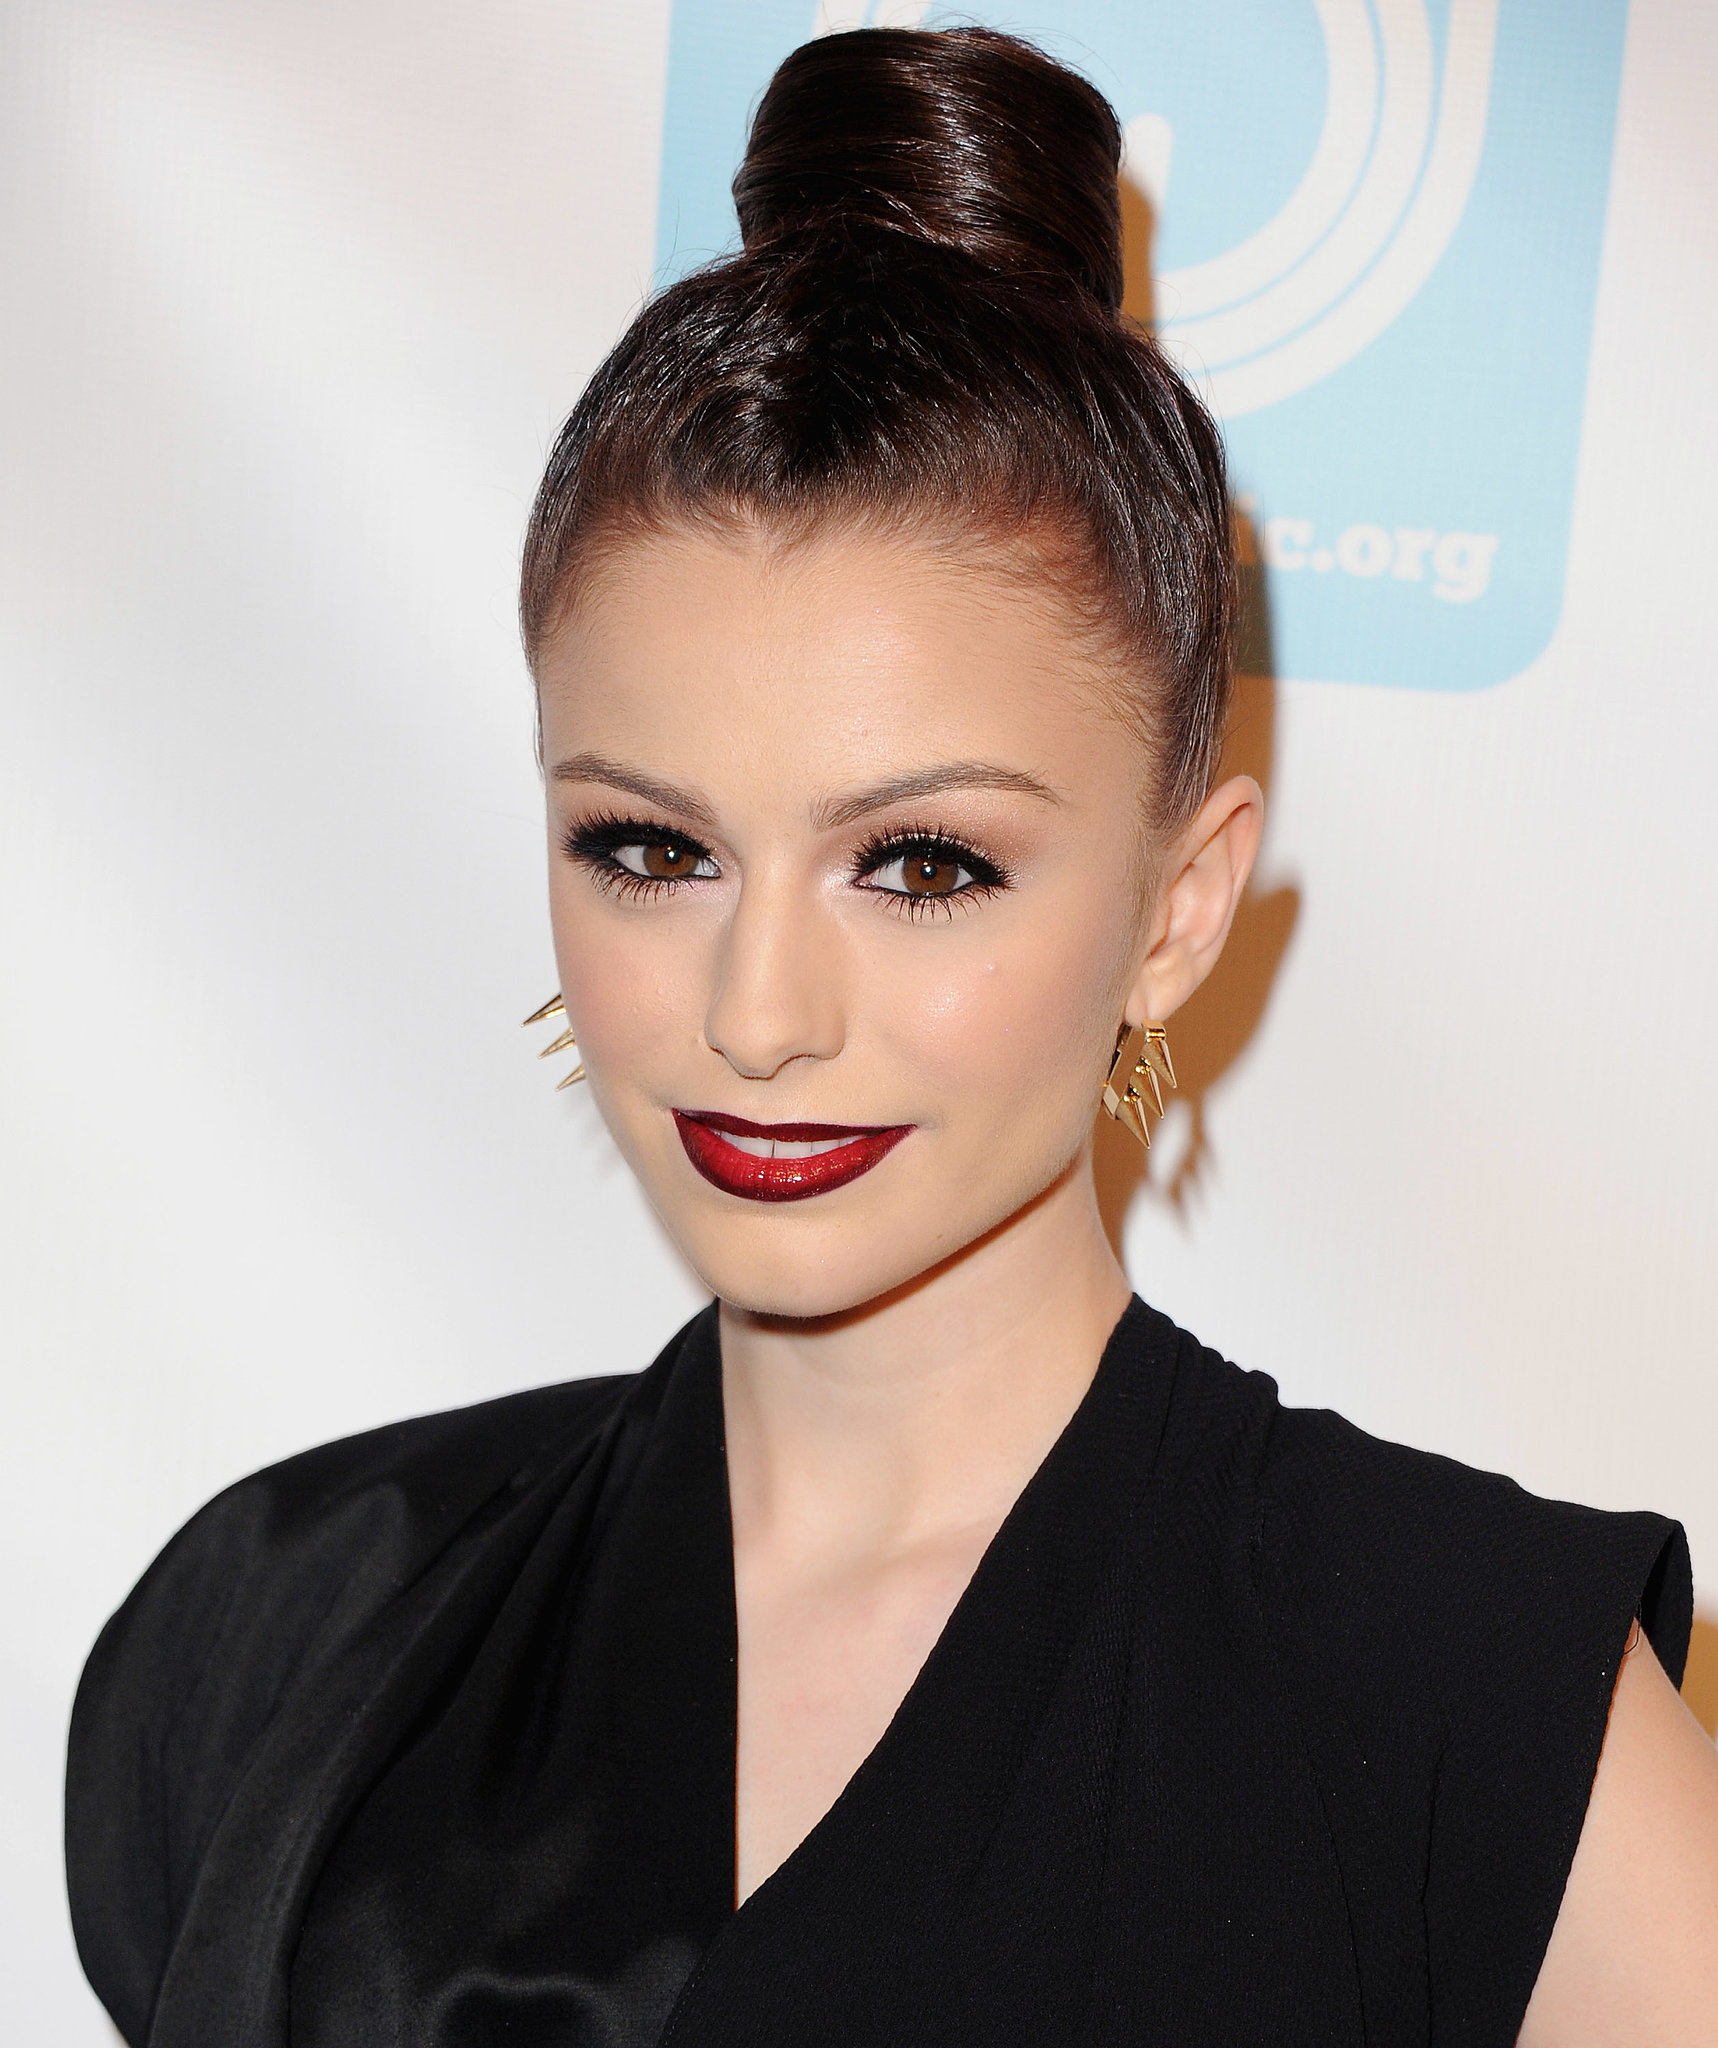 This high bun, as spotted on singer-songwriter Cher Lloyd, has a cylindrical shape that's quite unique.